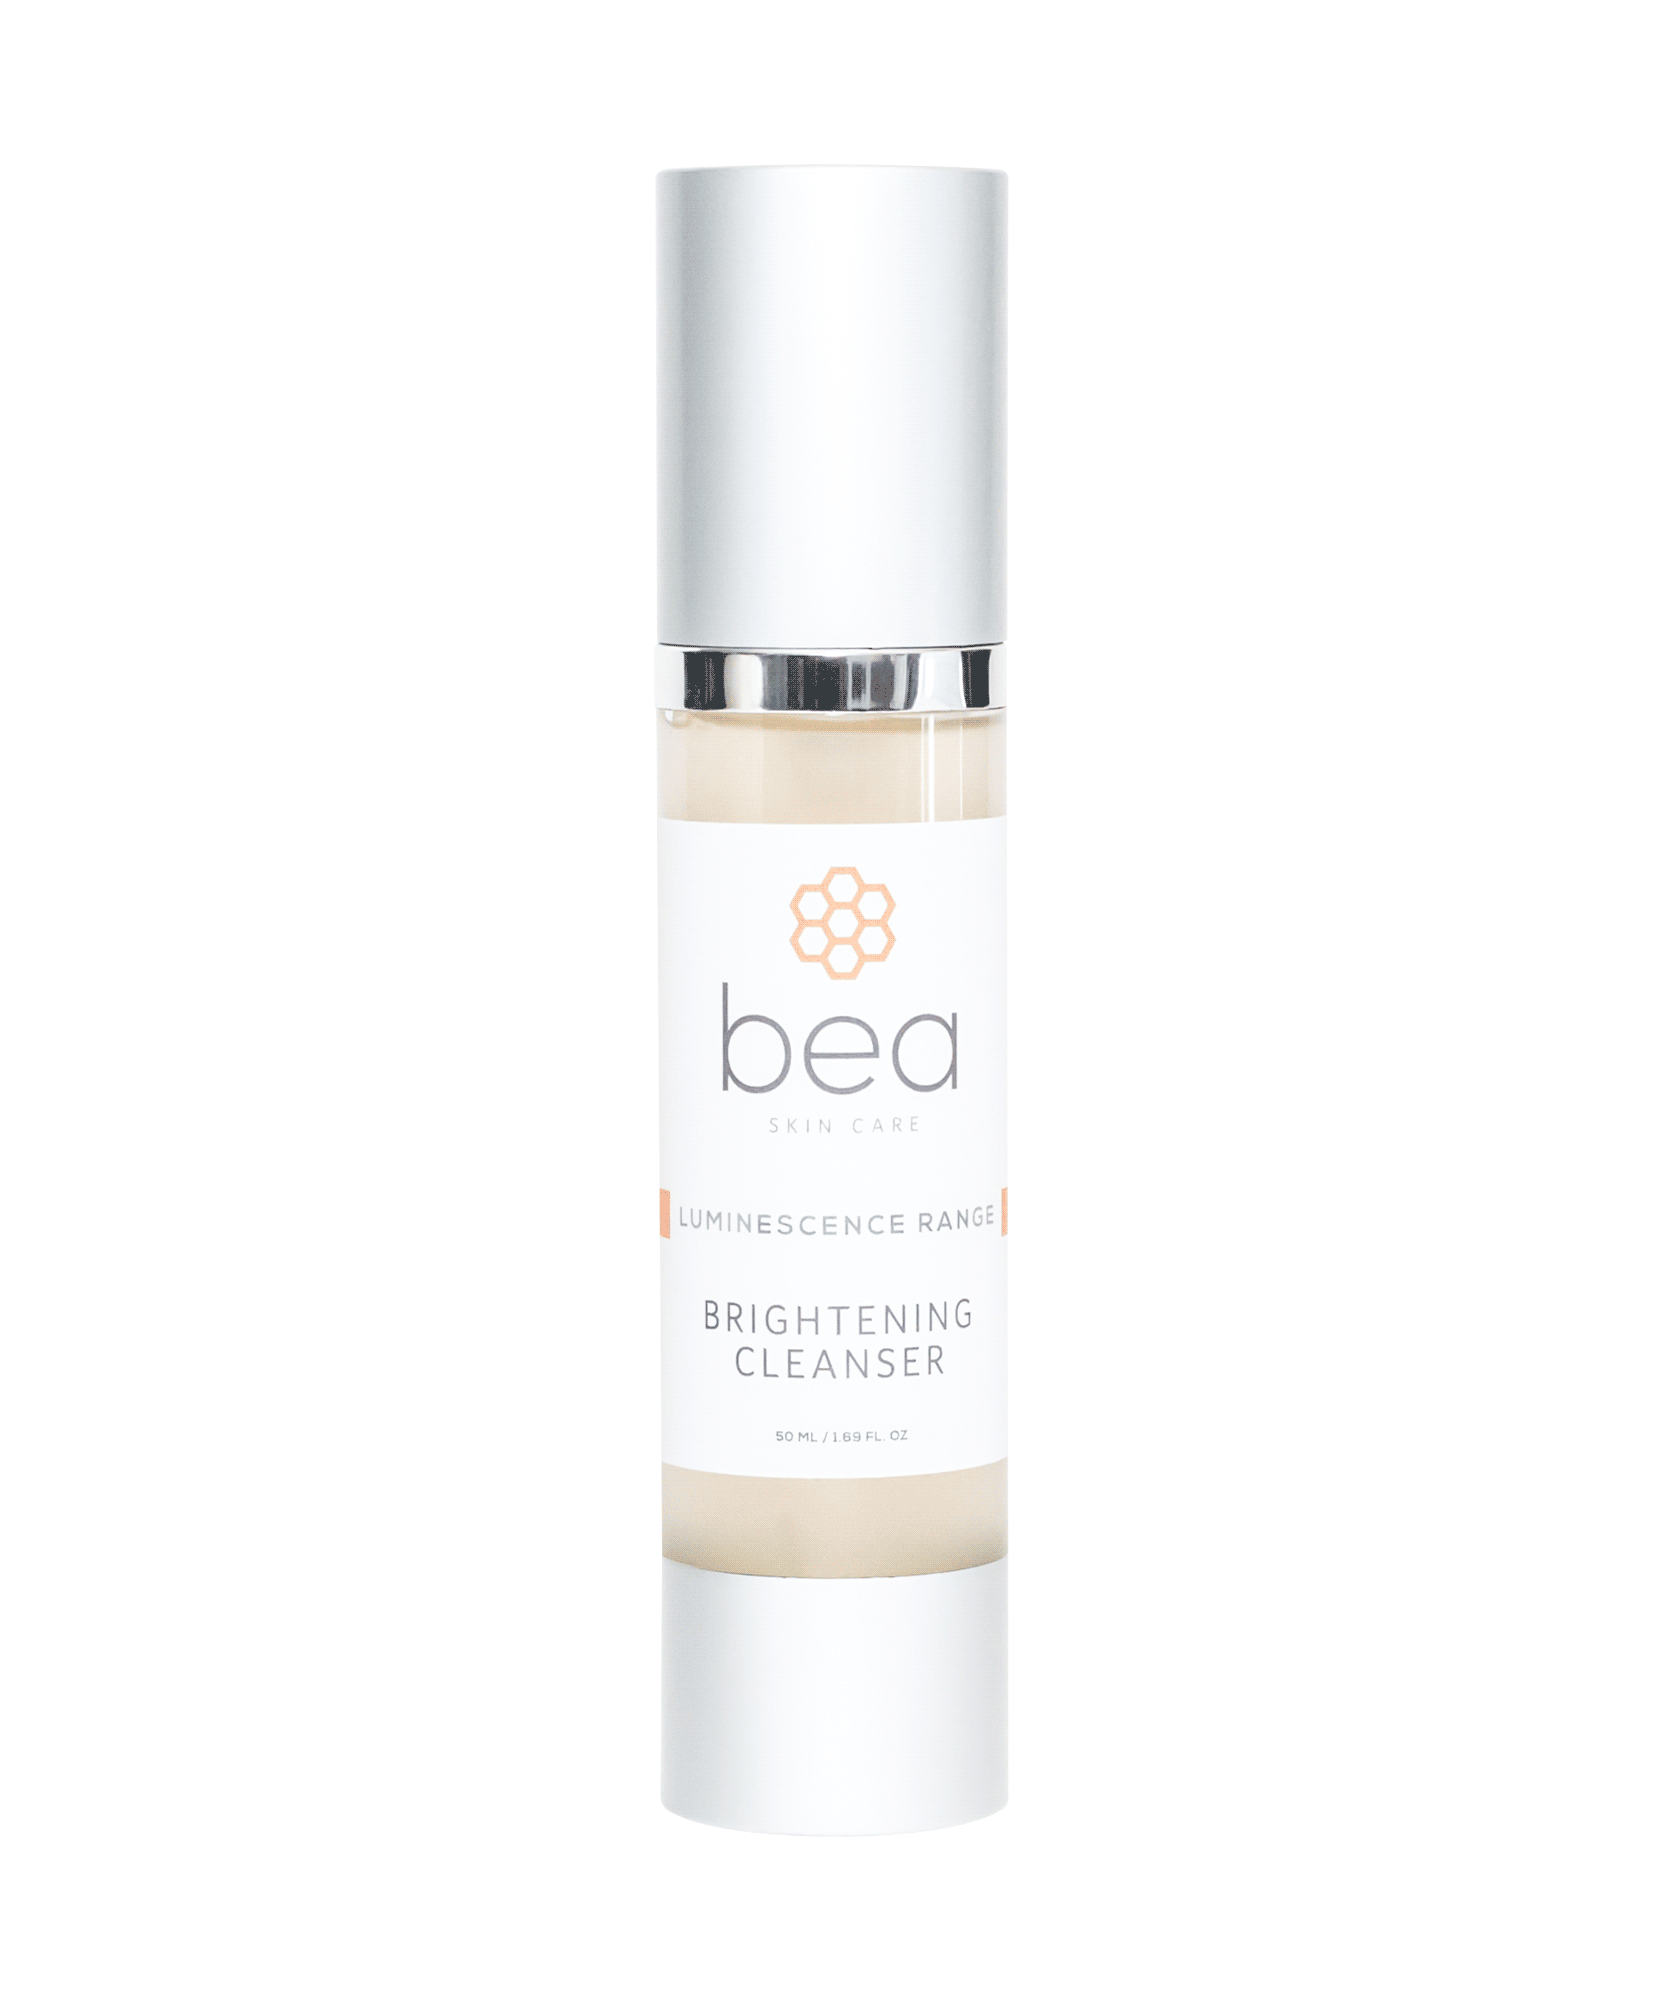 Brightening Cleanser - 50 ml Cleanser bea Skin Care